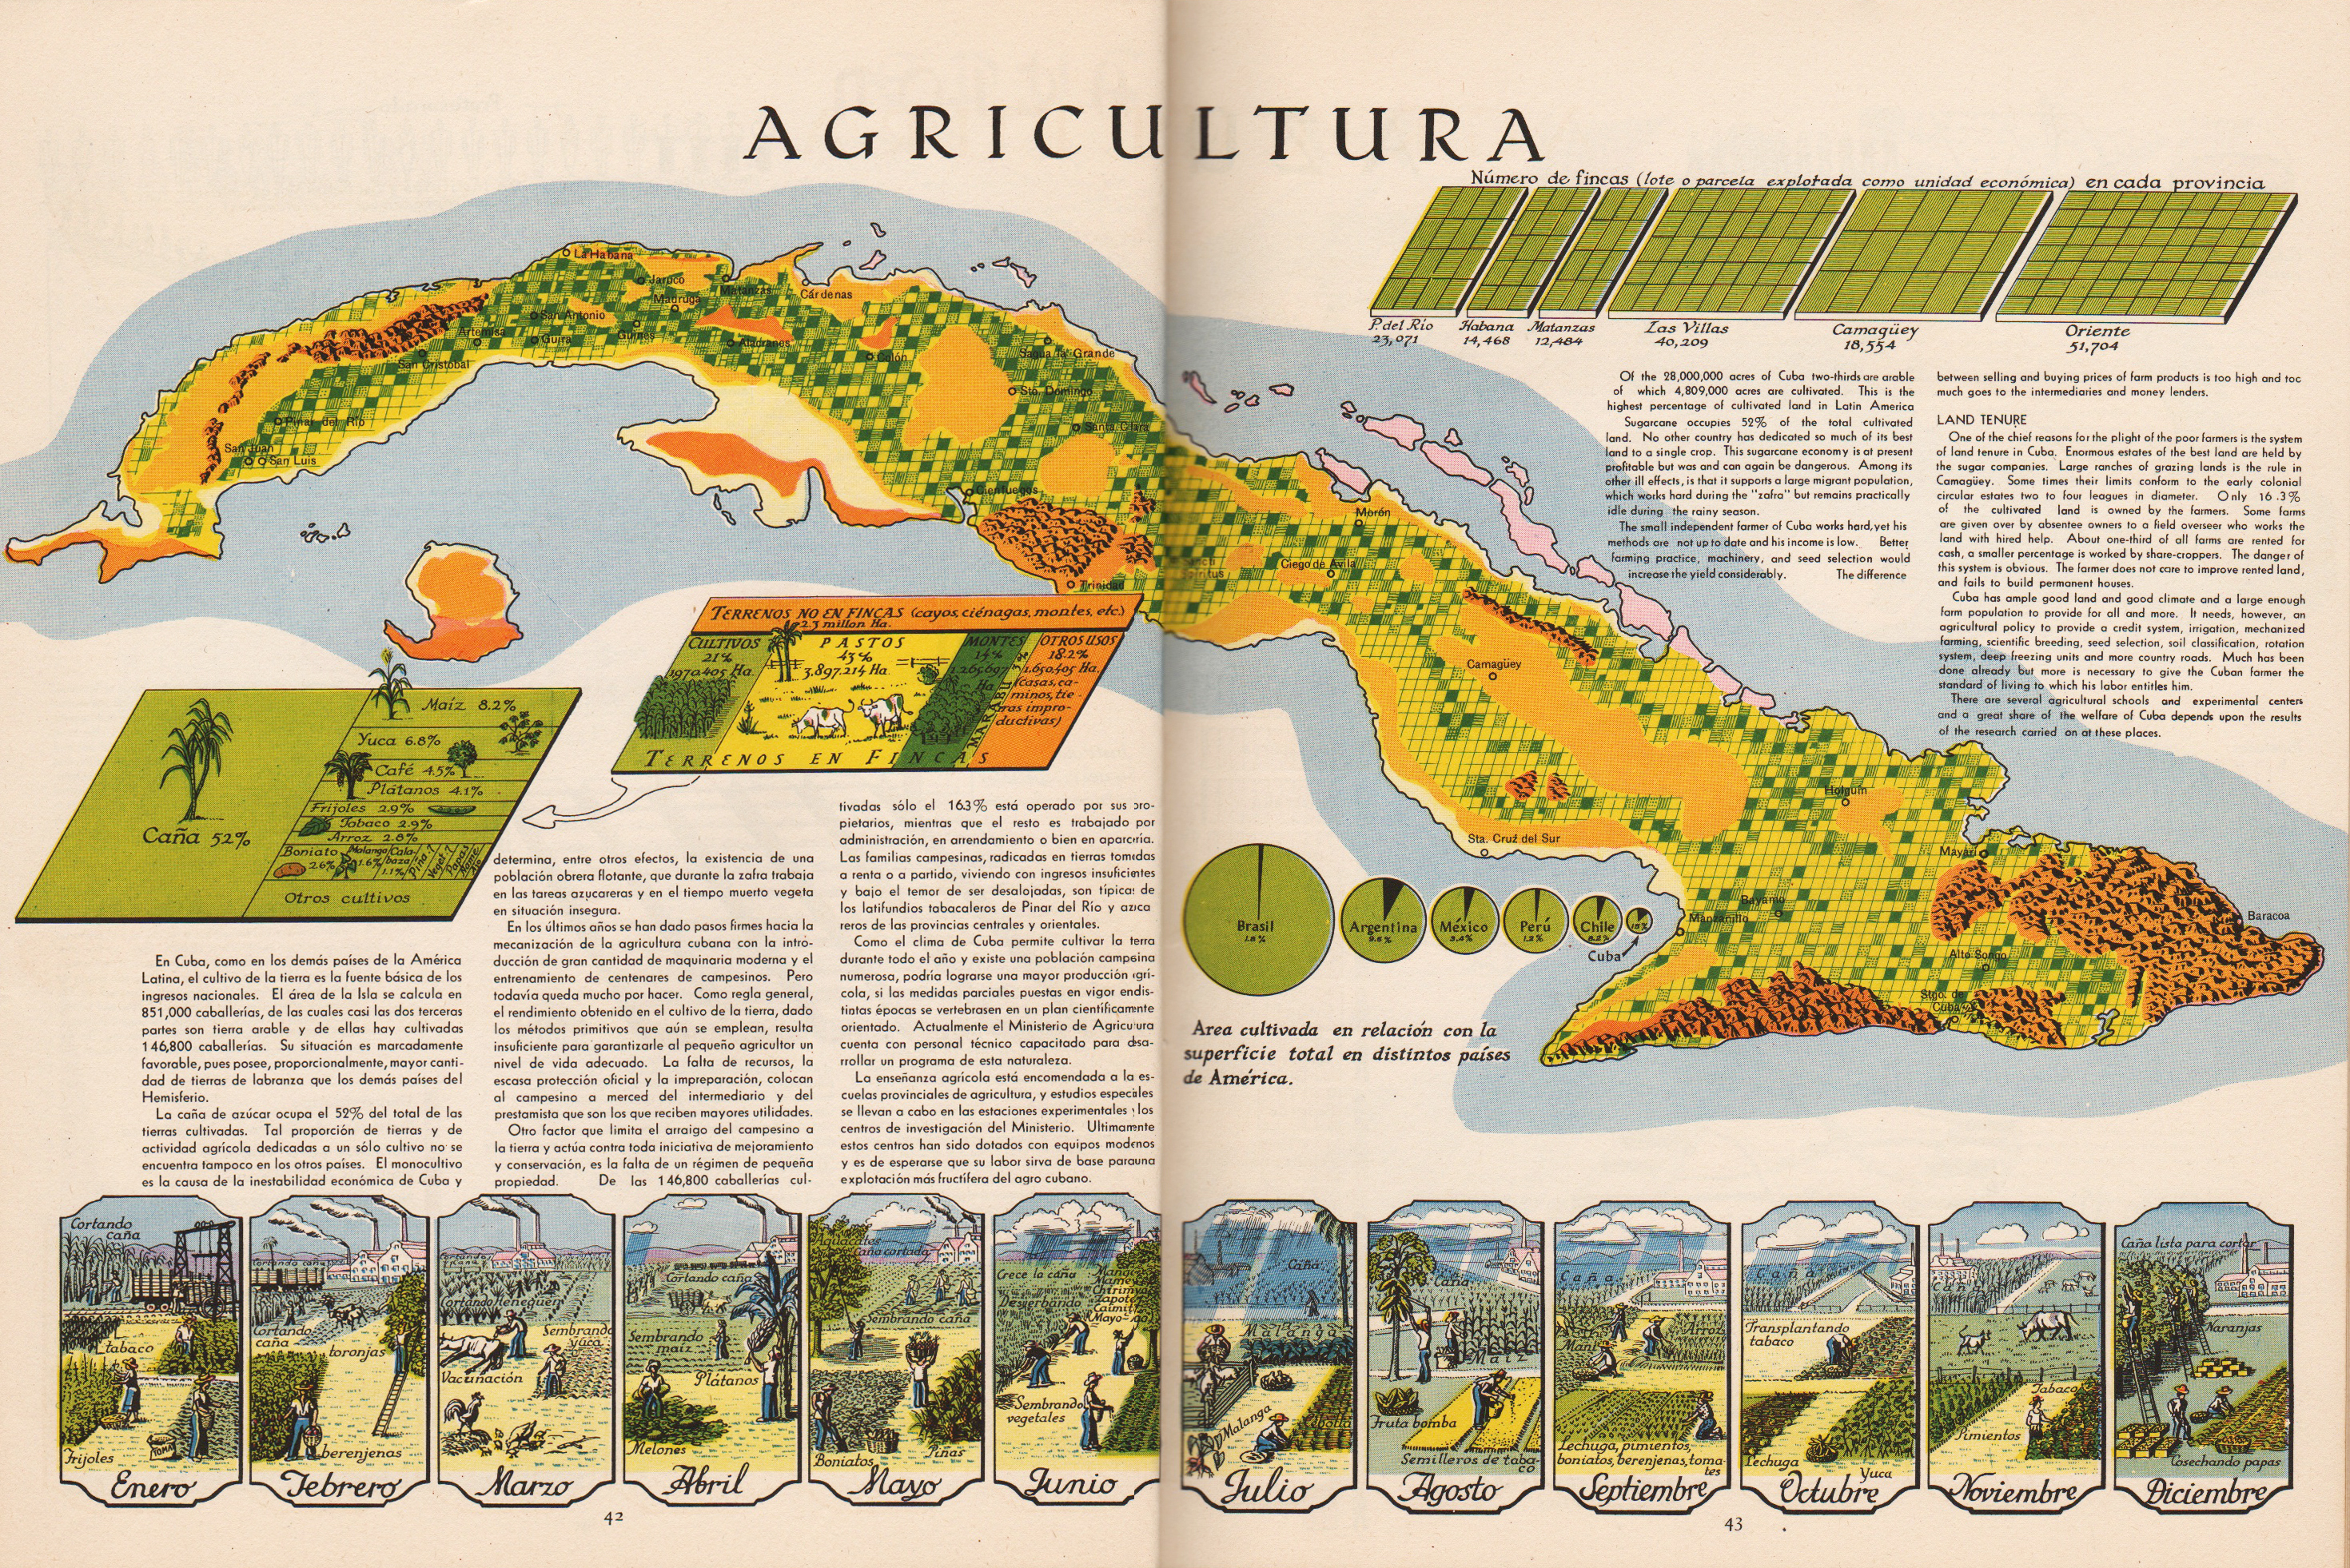 06 map layout making maps diy cartography raiszatlasofcubap42 43agricultureclose raiszatlasofcubap42 43agricultureclose2 raiszatlasofcubap42 43agriculture gumiabroncs Gallery